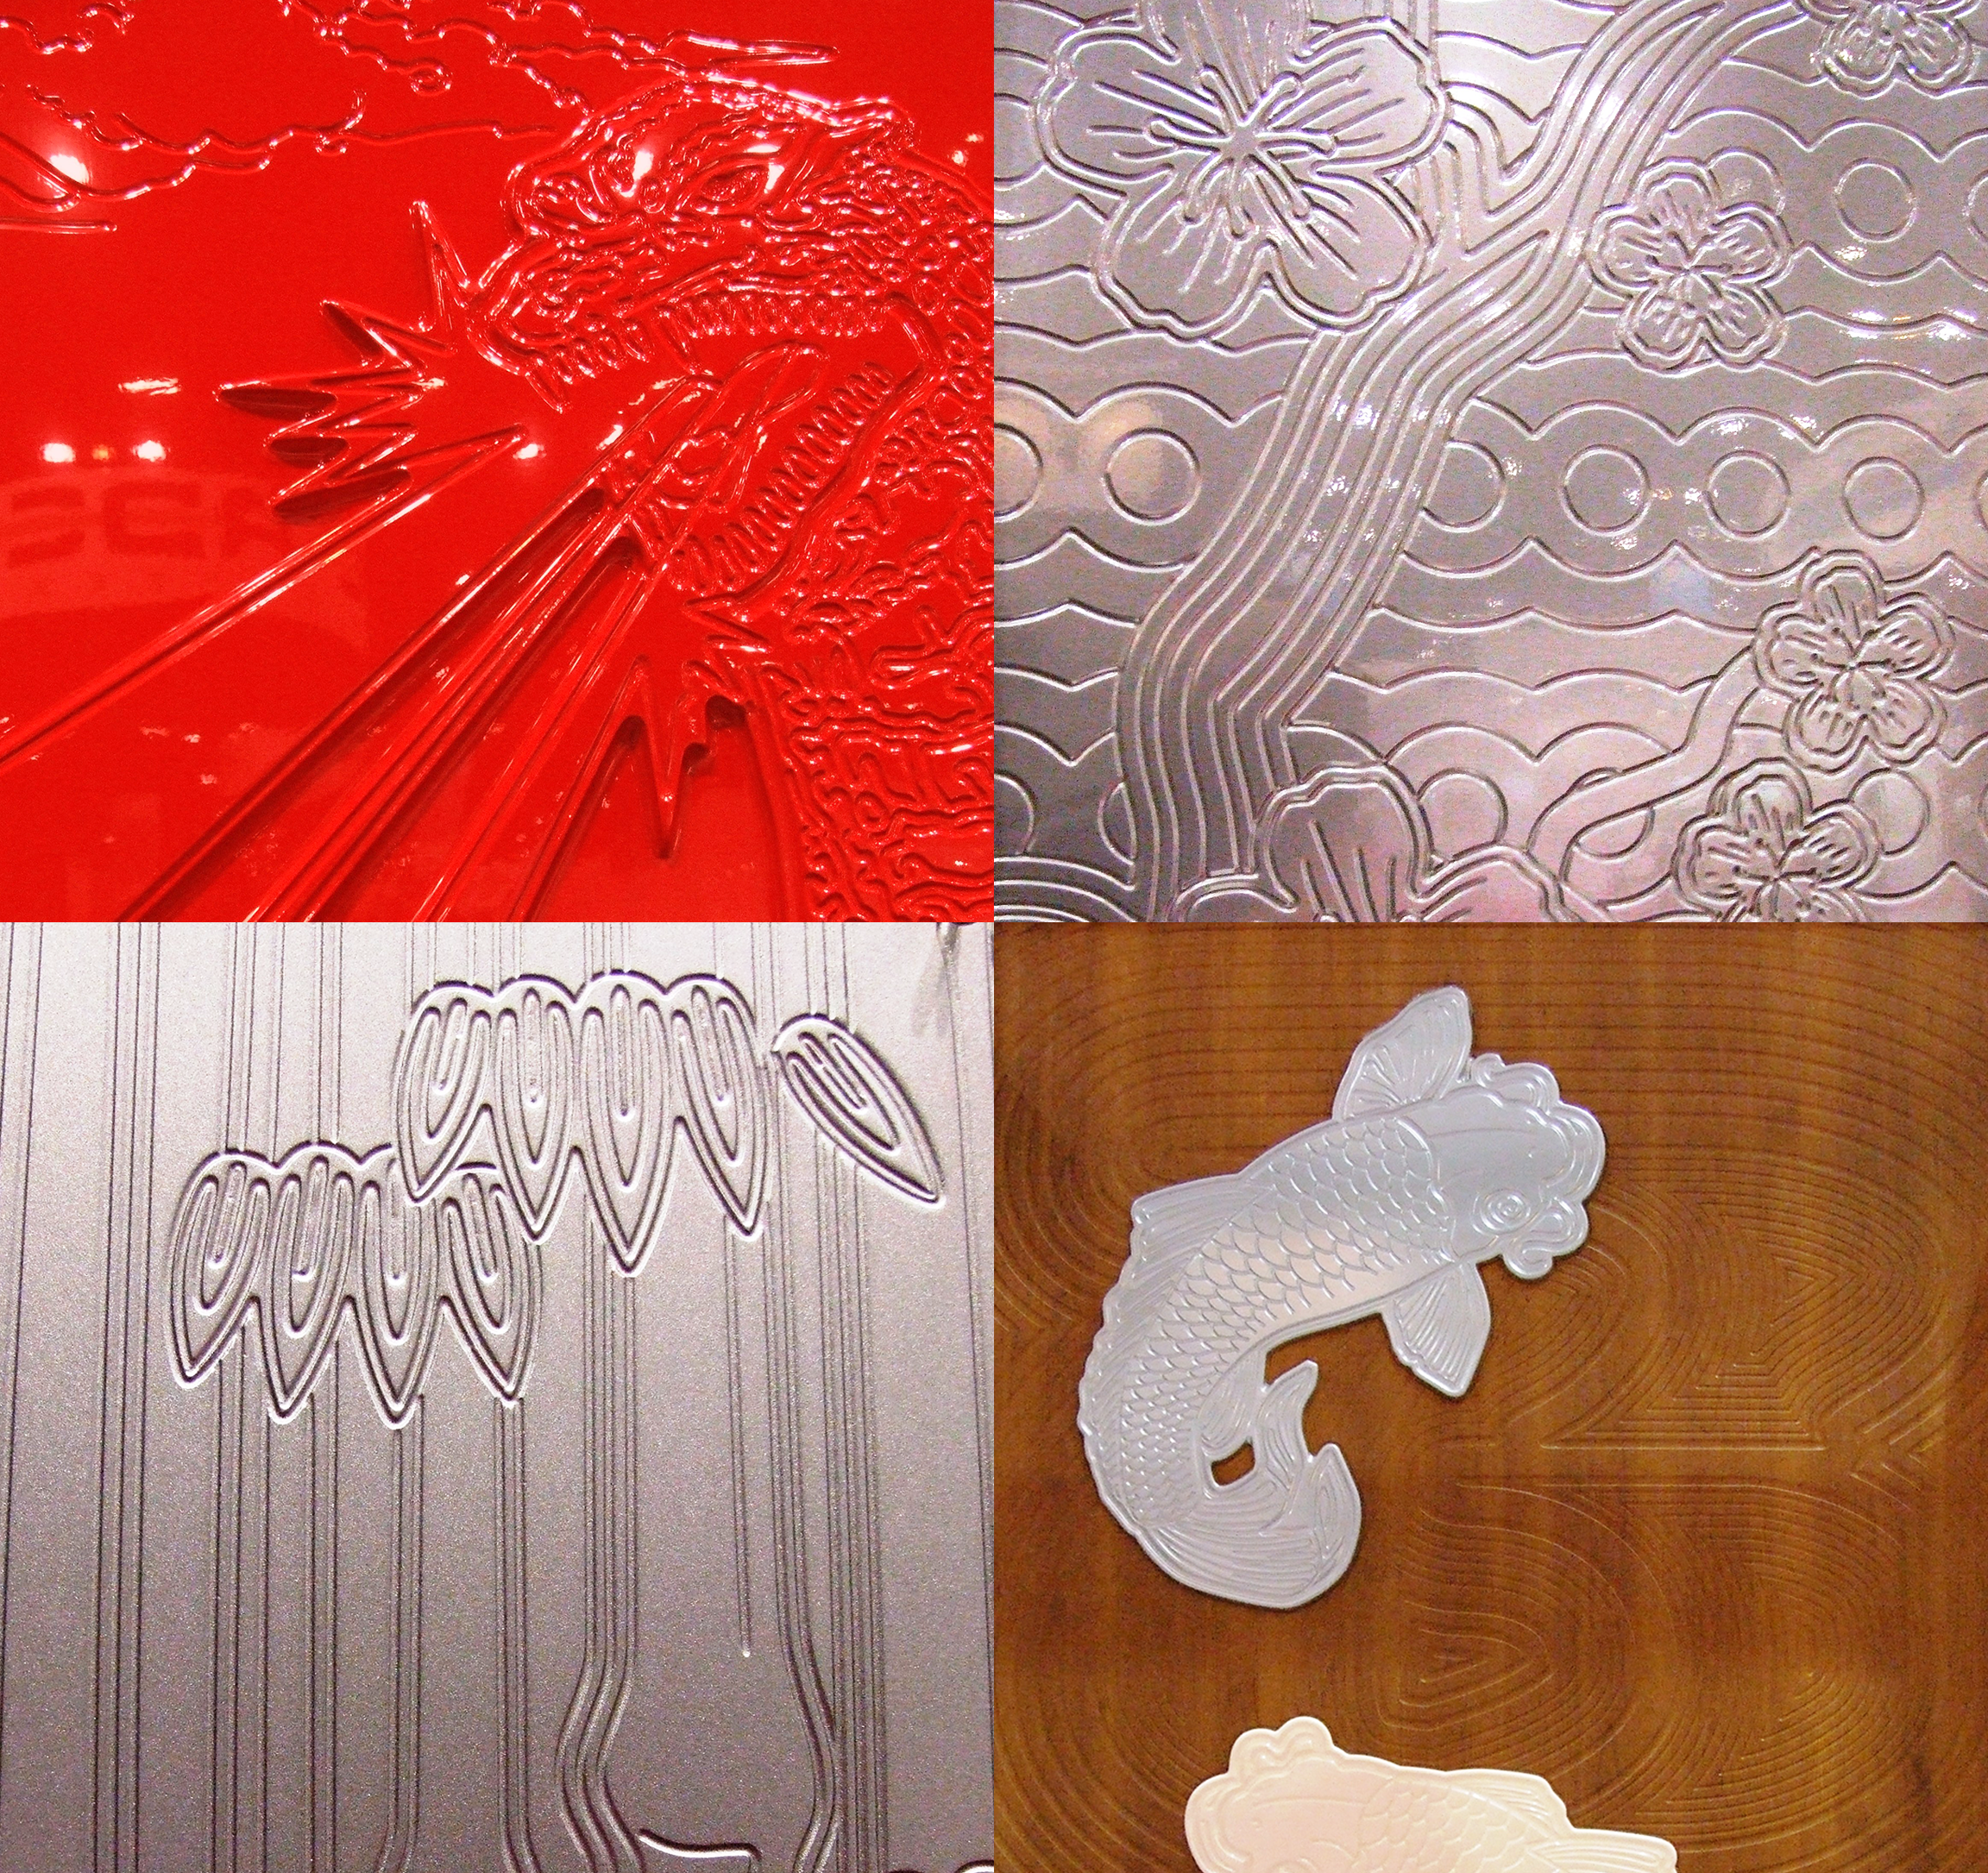 CNC Router Etched Design with 3D Laminate - Panels, Signs, Design